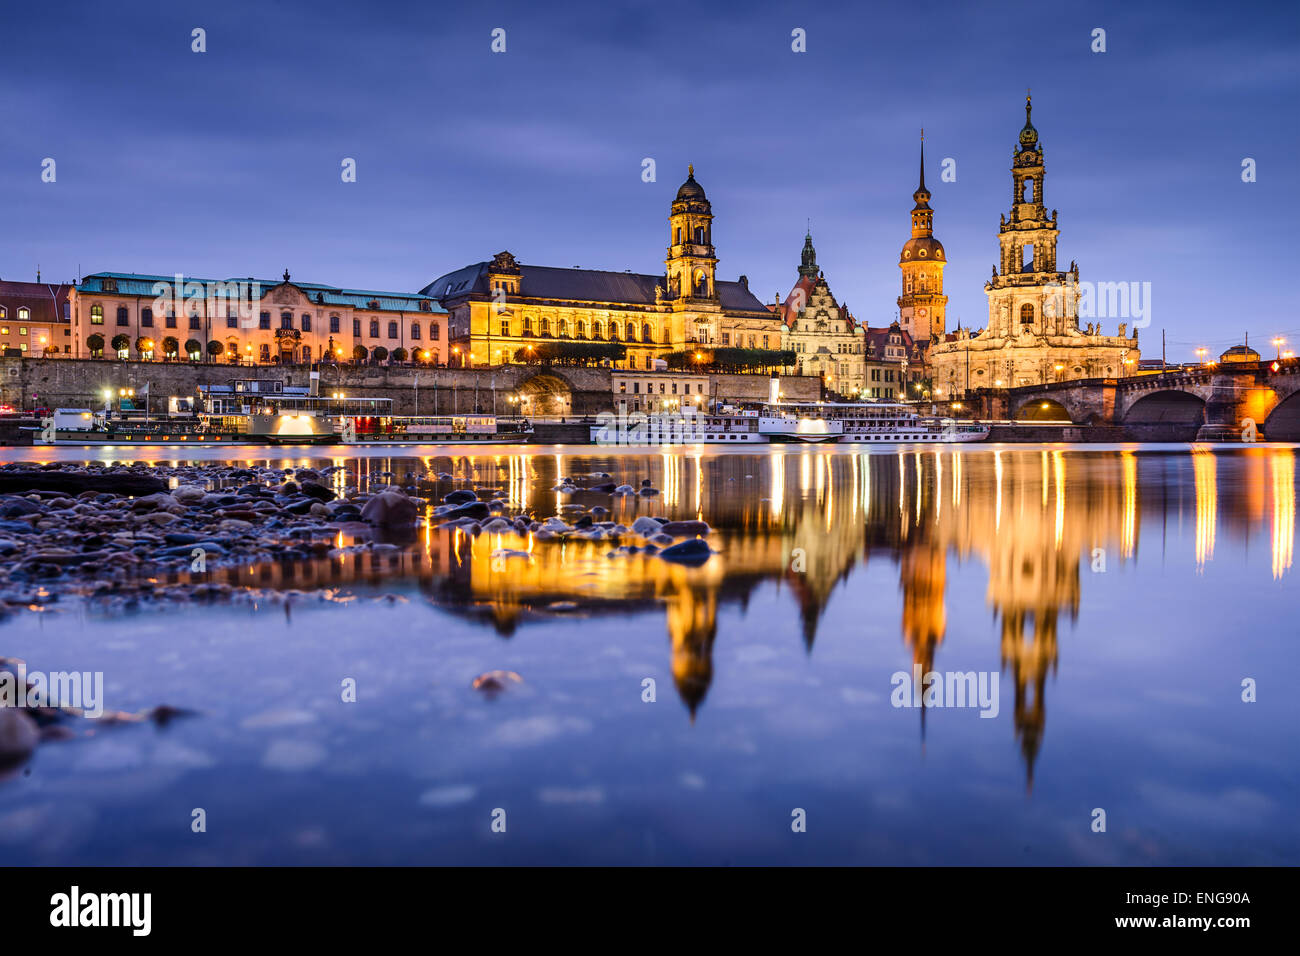 Dresden, Germany old town skyline on the Elbe River. Stock Photo